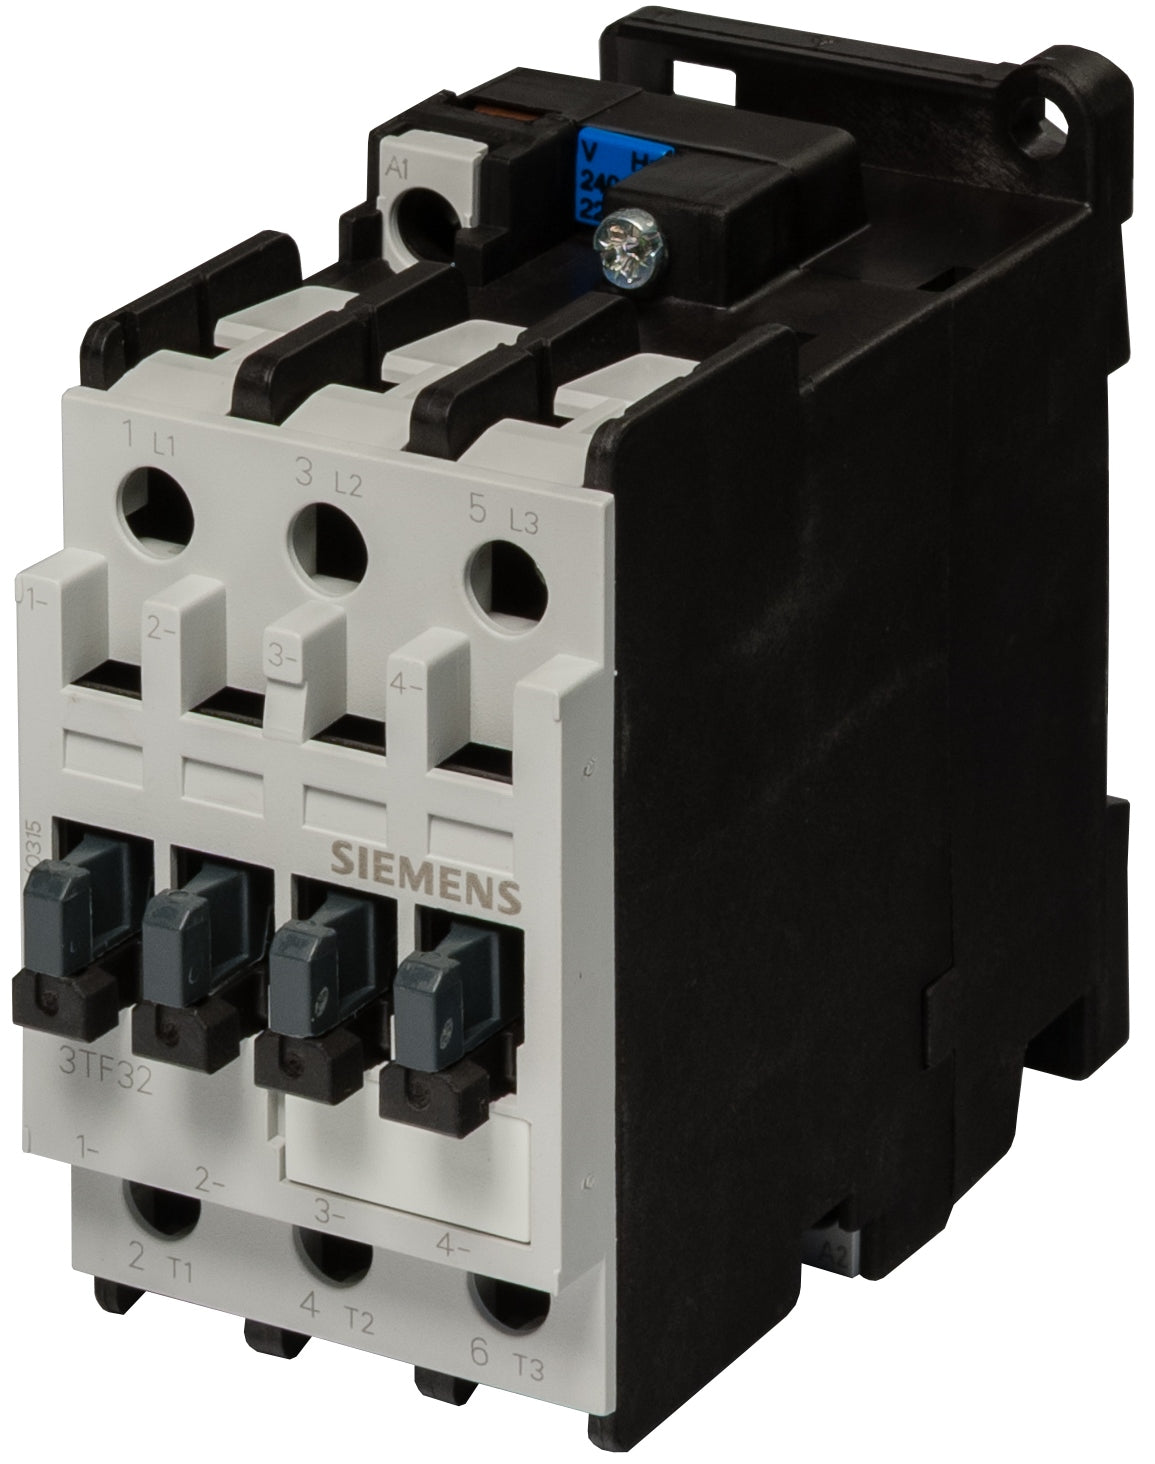 Magnetic Contactor Pole Relay Wiring on magnetic contactor with overload relay, 8 pin relay wiring, electrical relay wiring, magnetic energy, control relay wiring, 24vdc contactor relay wiring,